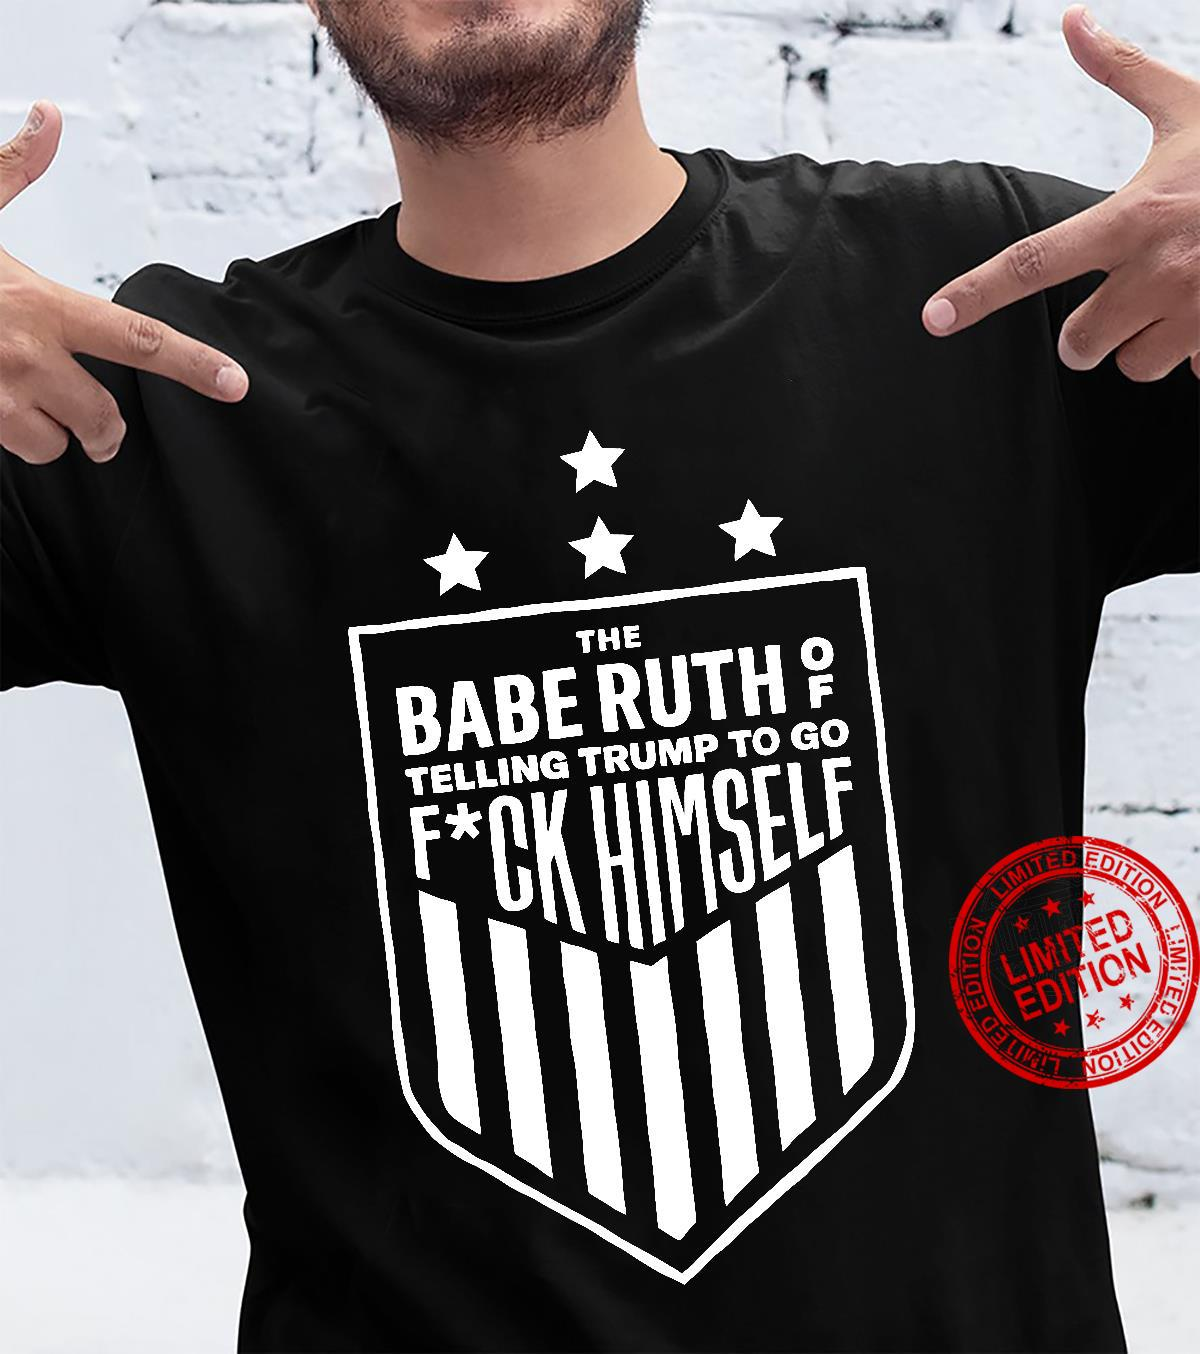 The Babe Ruth Of Telling Trump To Go Fuck Himself black shirt